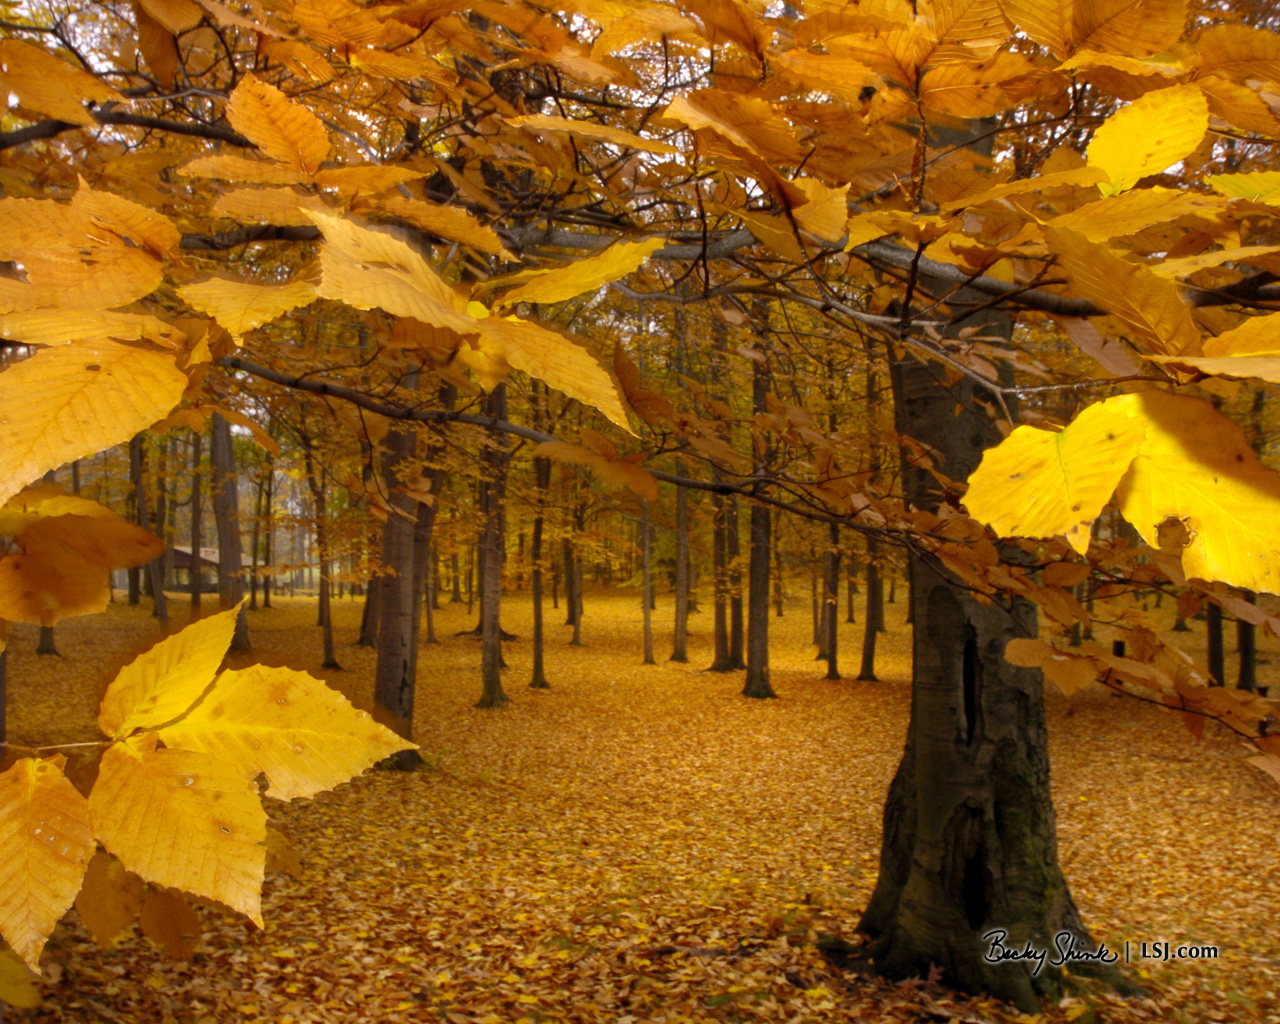 Yellow Leaves   Autumn Wallpaper 393324 1280x1024